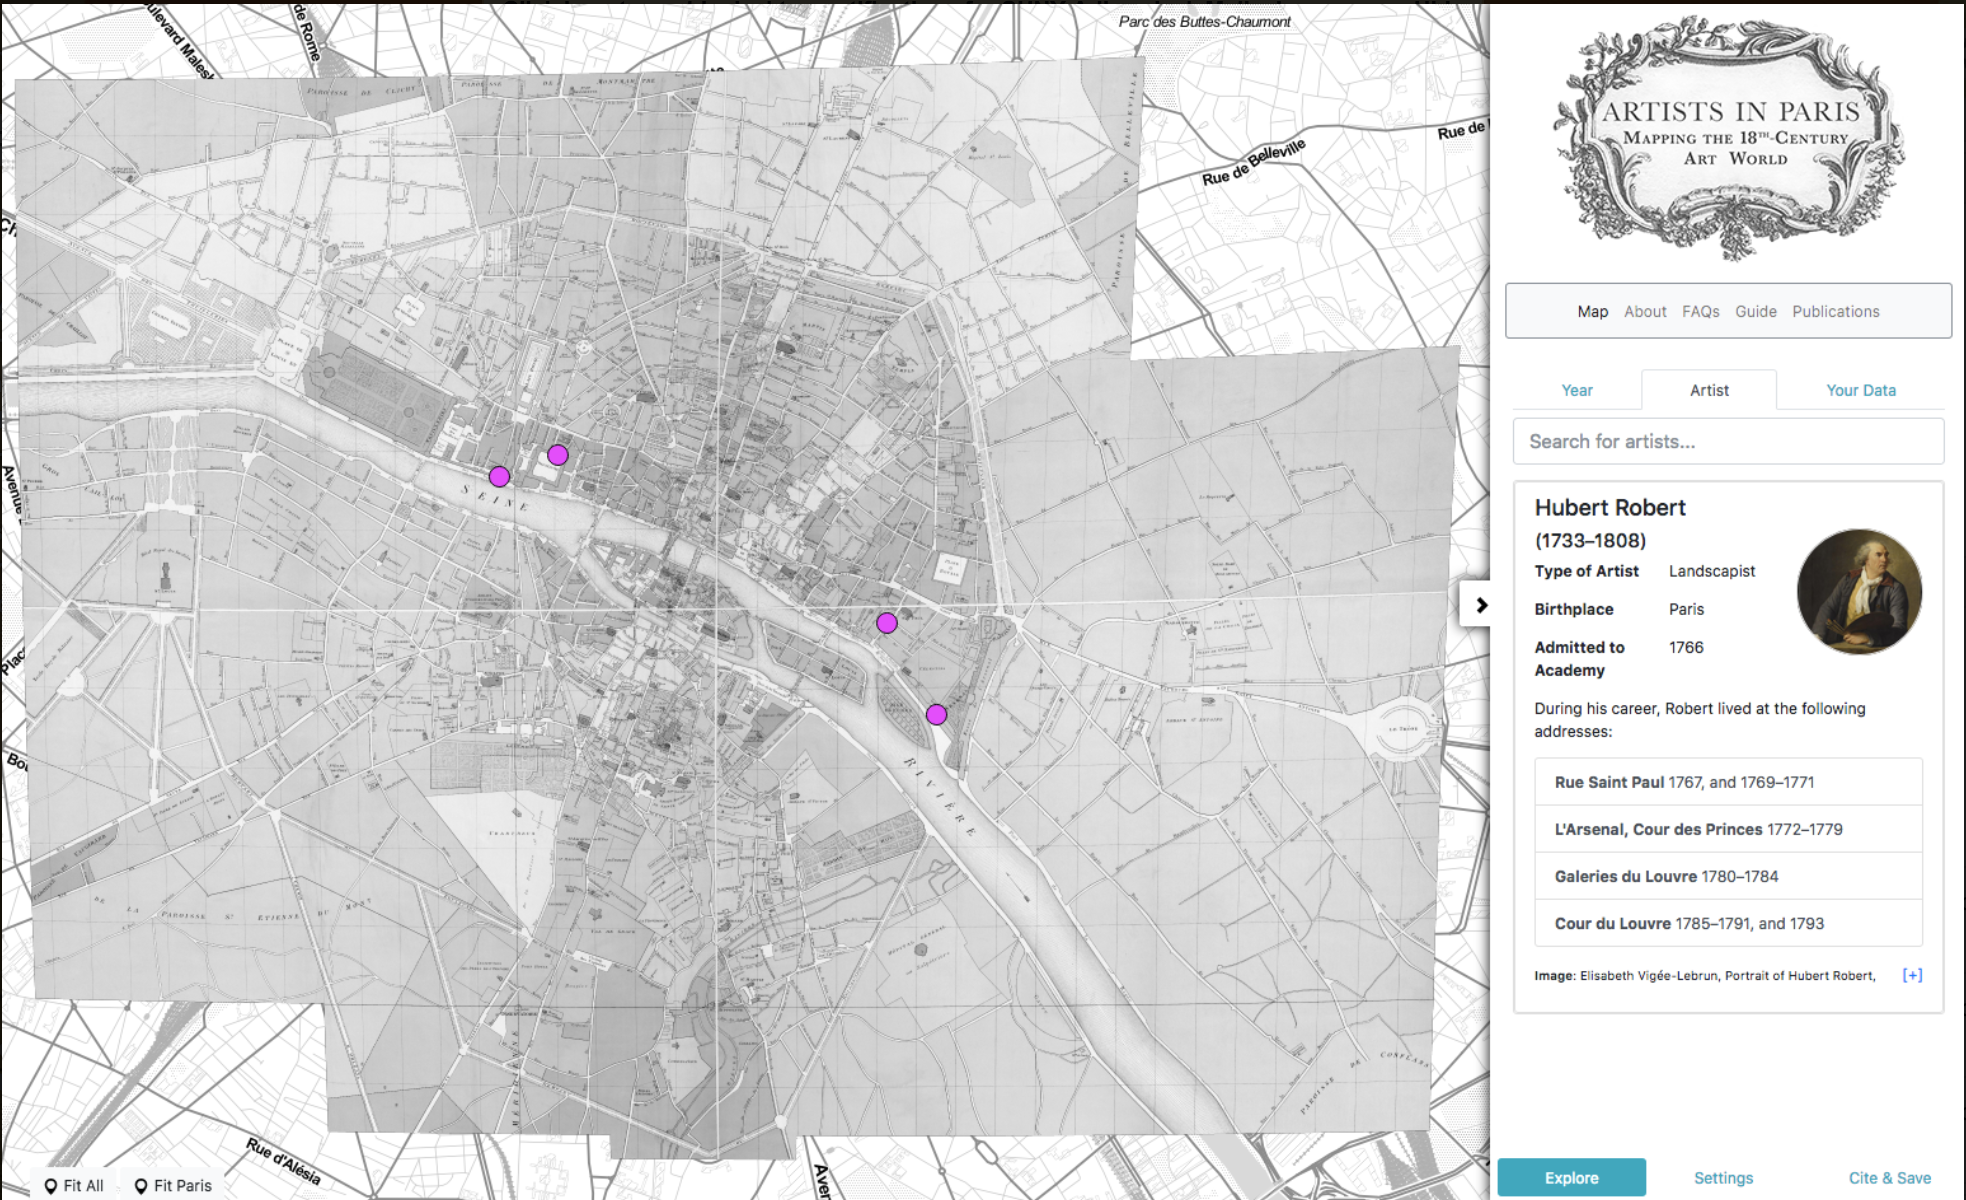 Map of Paris with all the addresses where Hubert Robert lived.